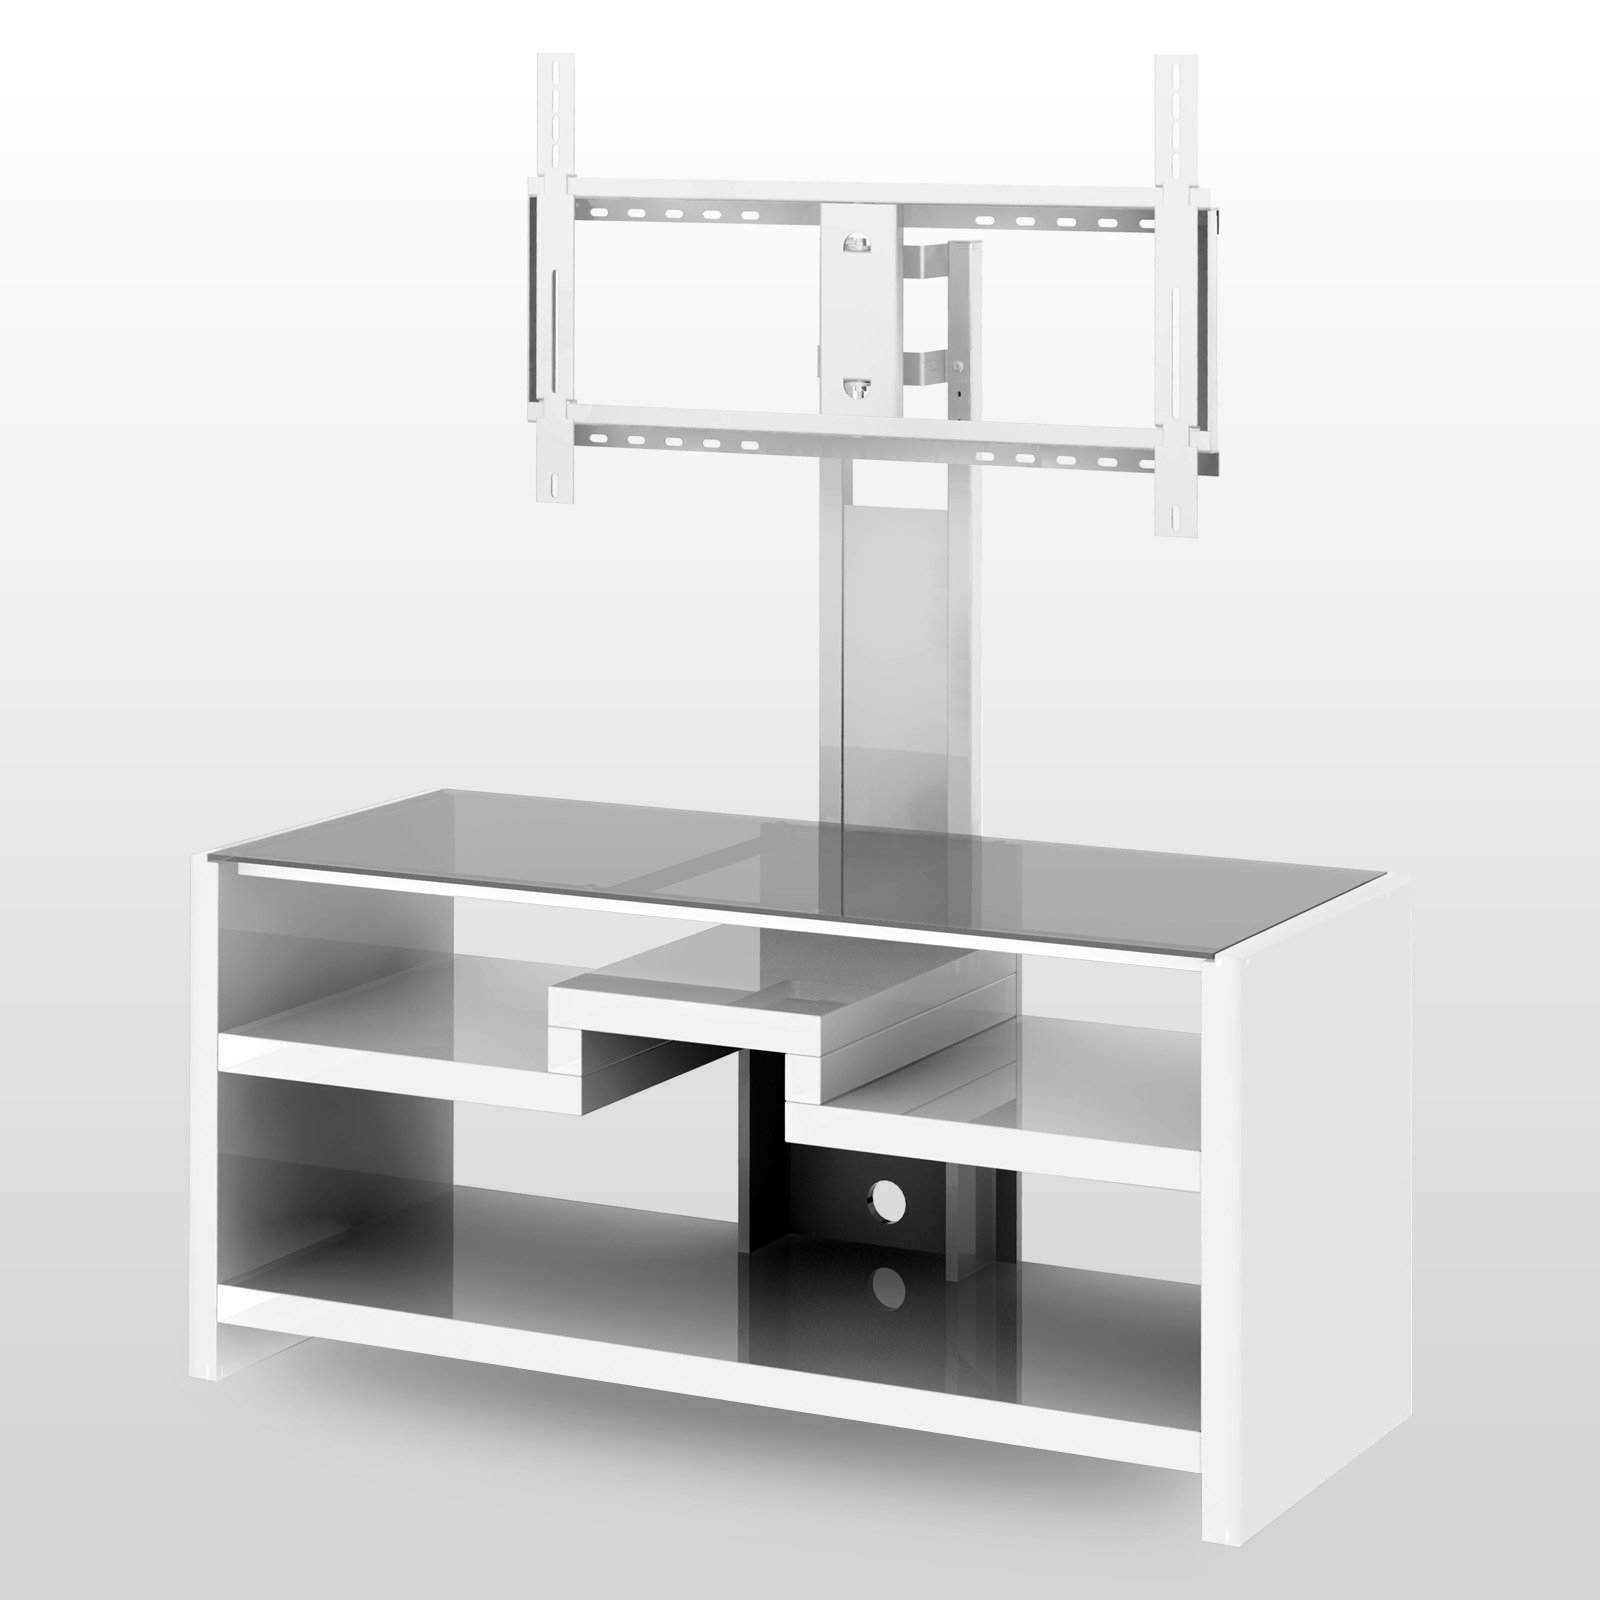 Latest Contemporary White Glass Flat Screen Tv Stand With Mount Of Stylish Intended For White Tv Stands For Flat Screens (View 6 of 20)